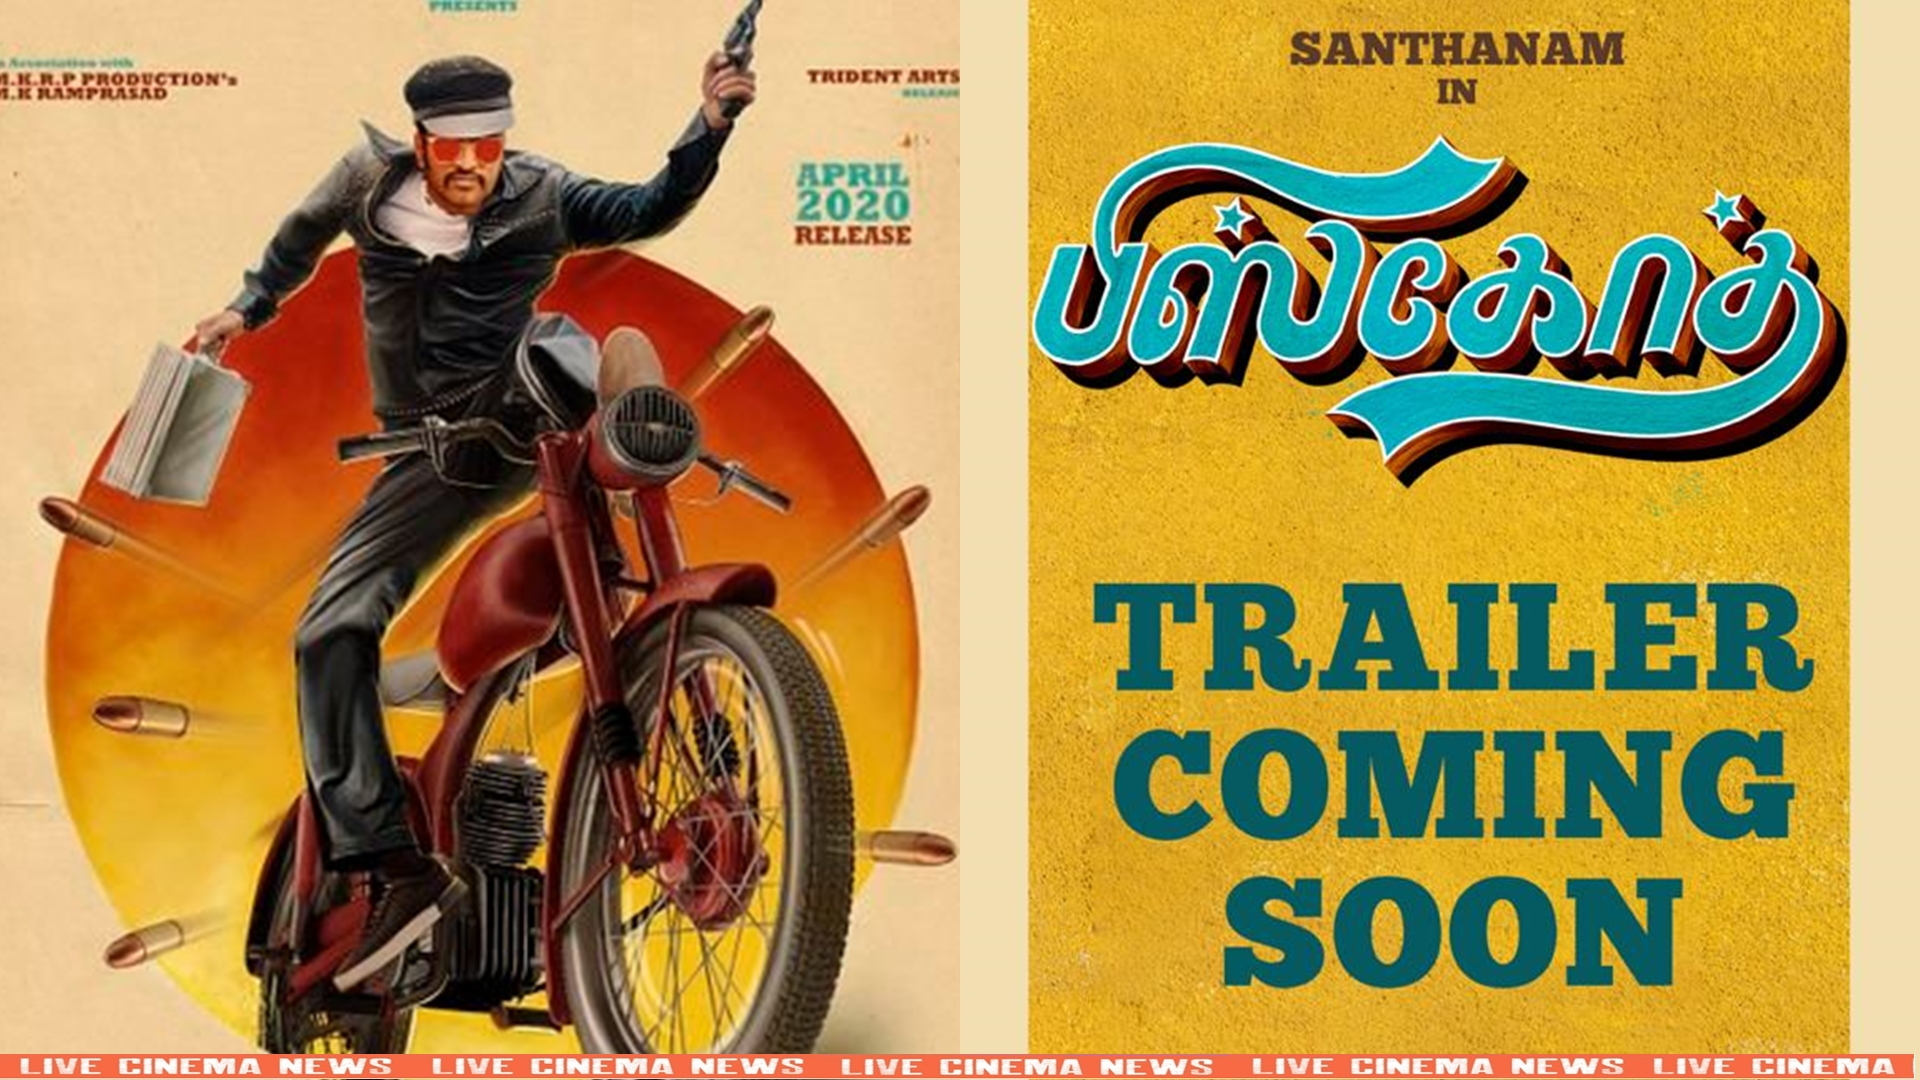 Santhanam's Biscoth movie trailer is coming out soon